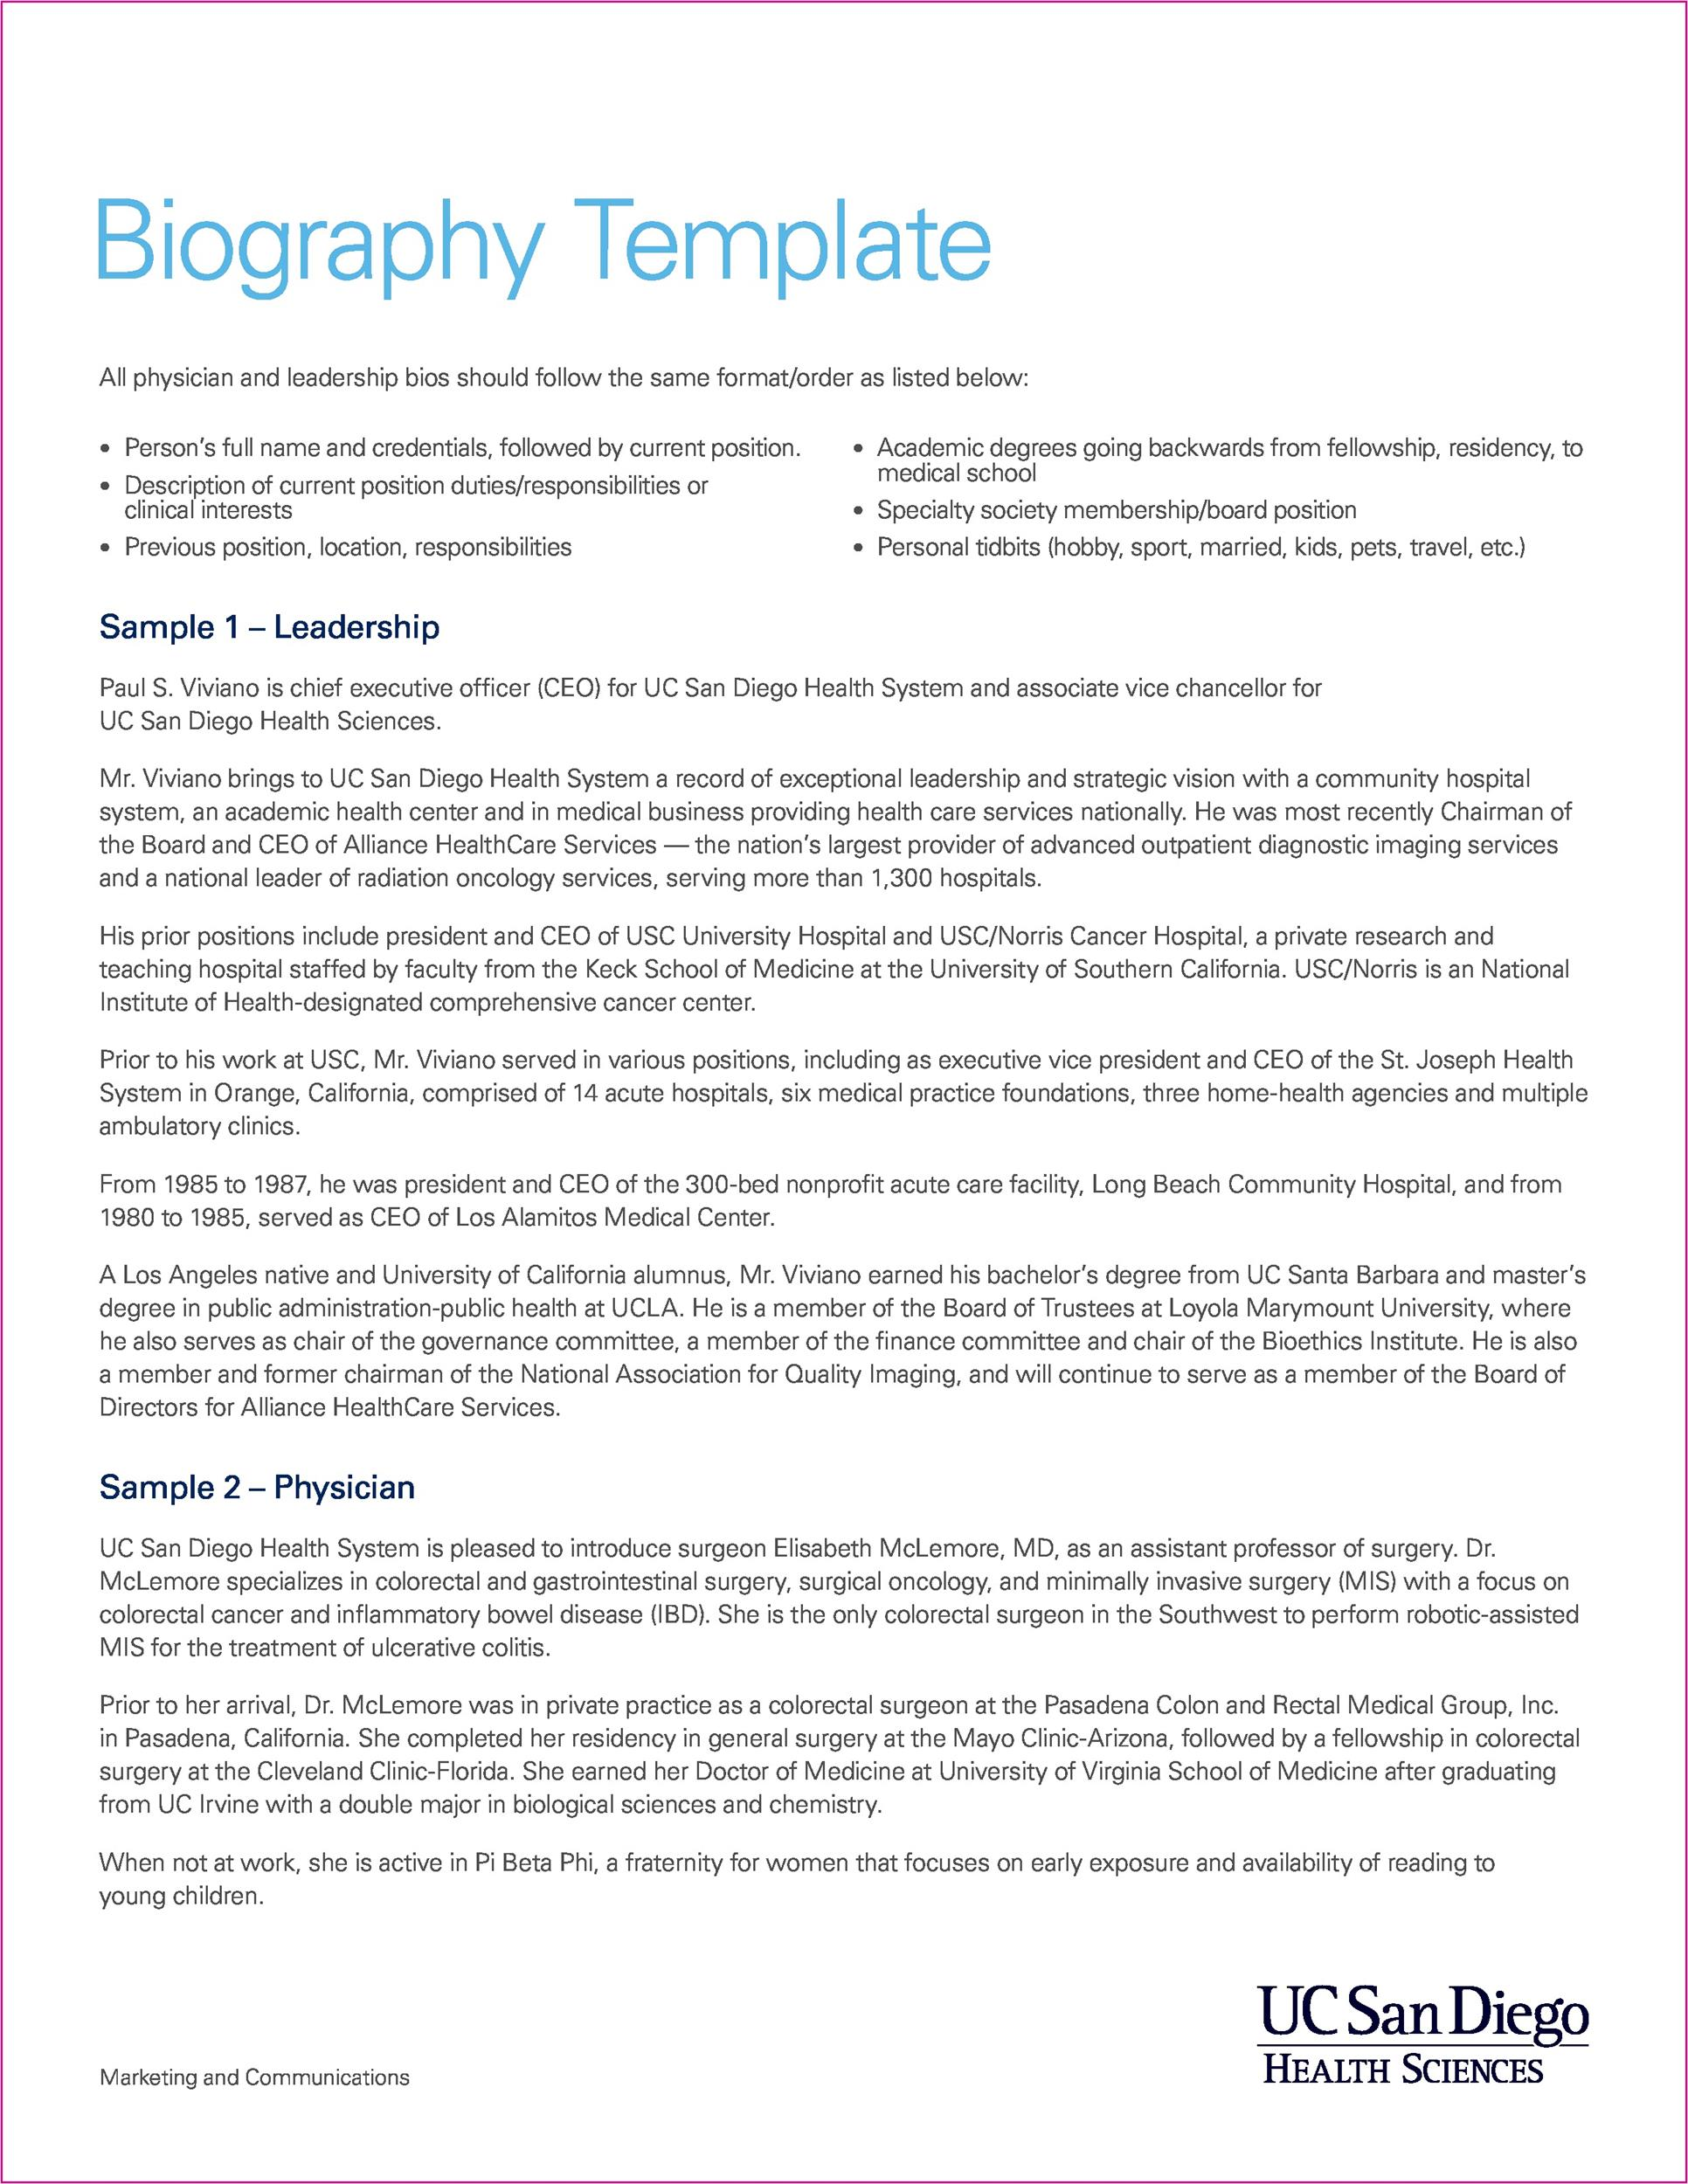 45 biography templates examples personal professional free biography template 01 thecheapjerseys Images